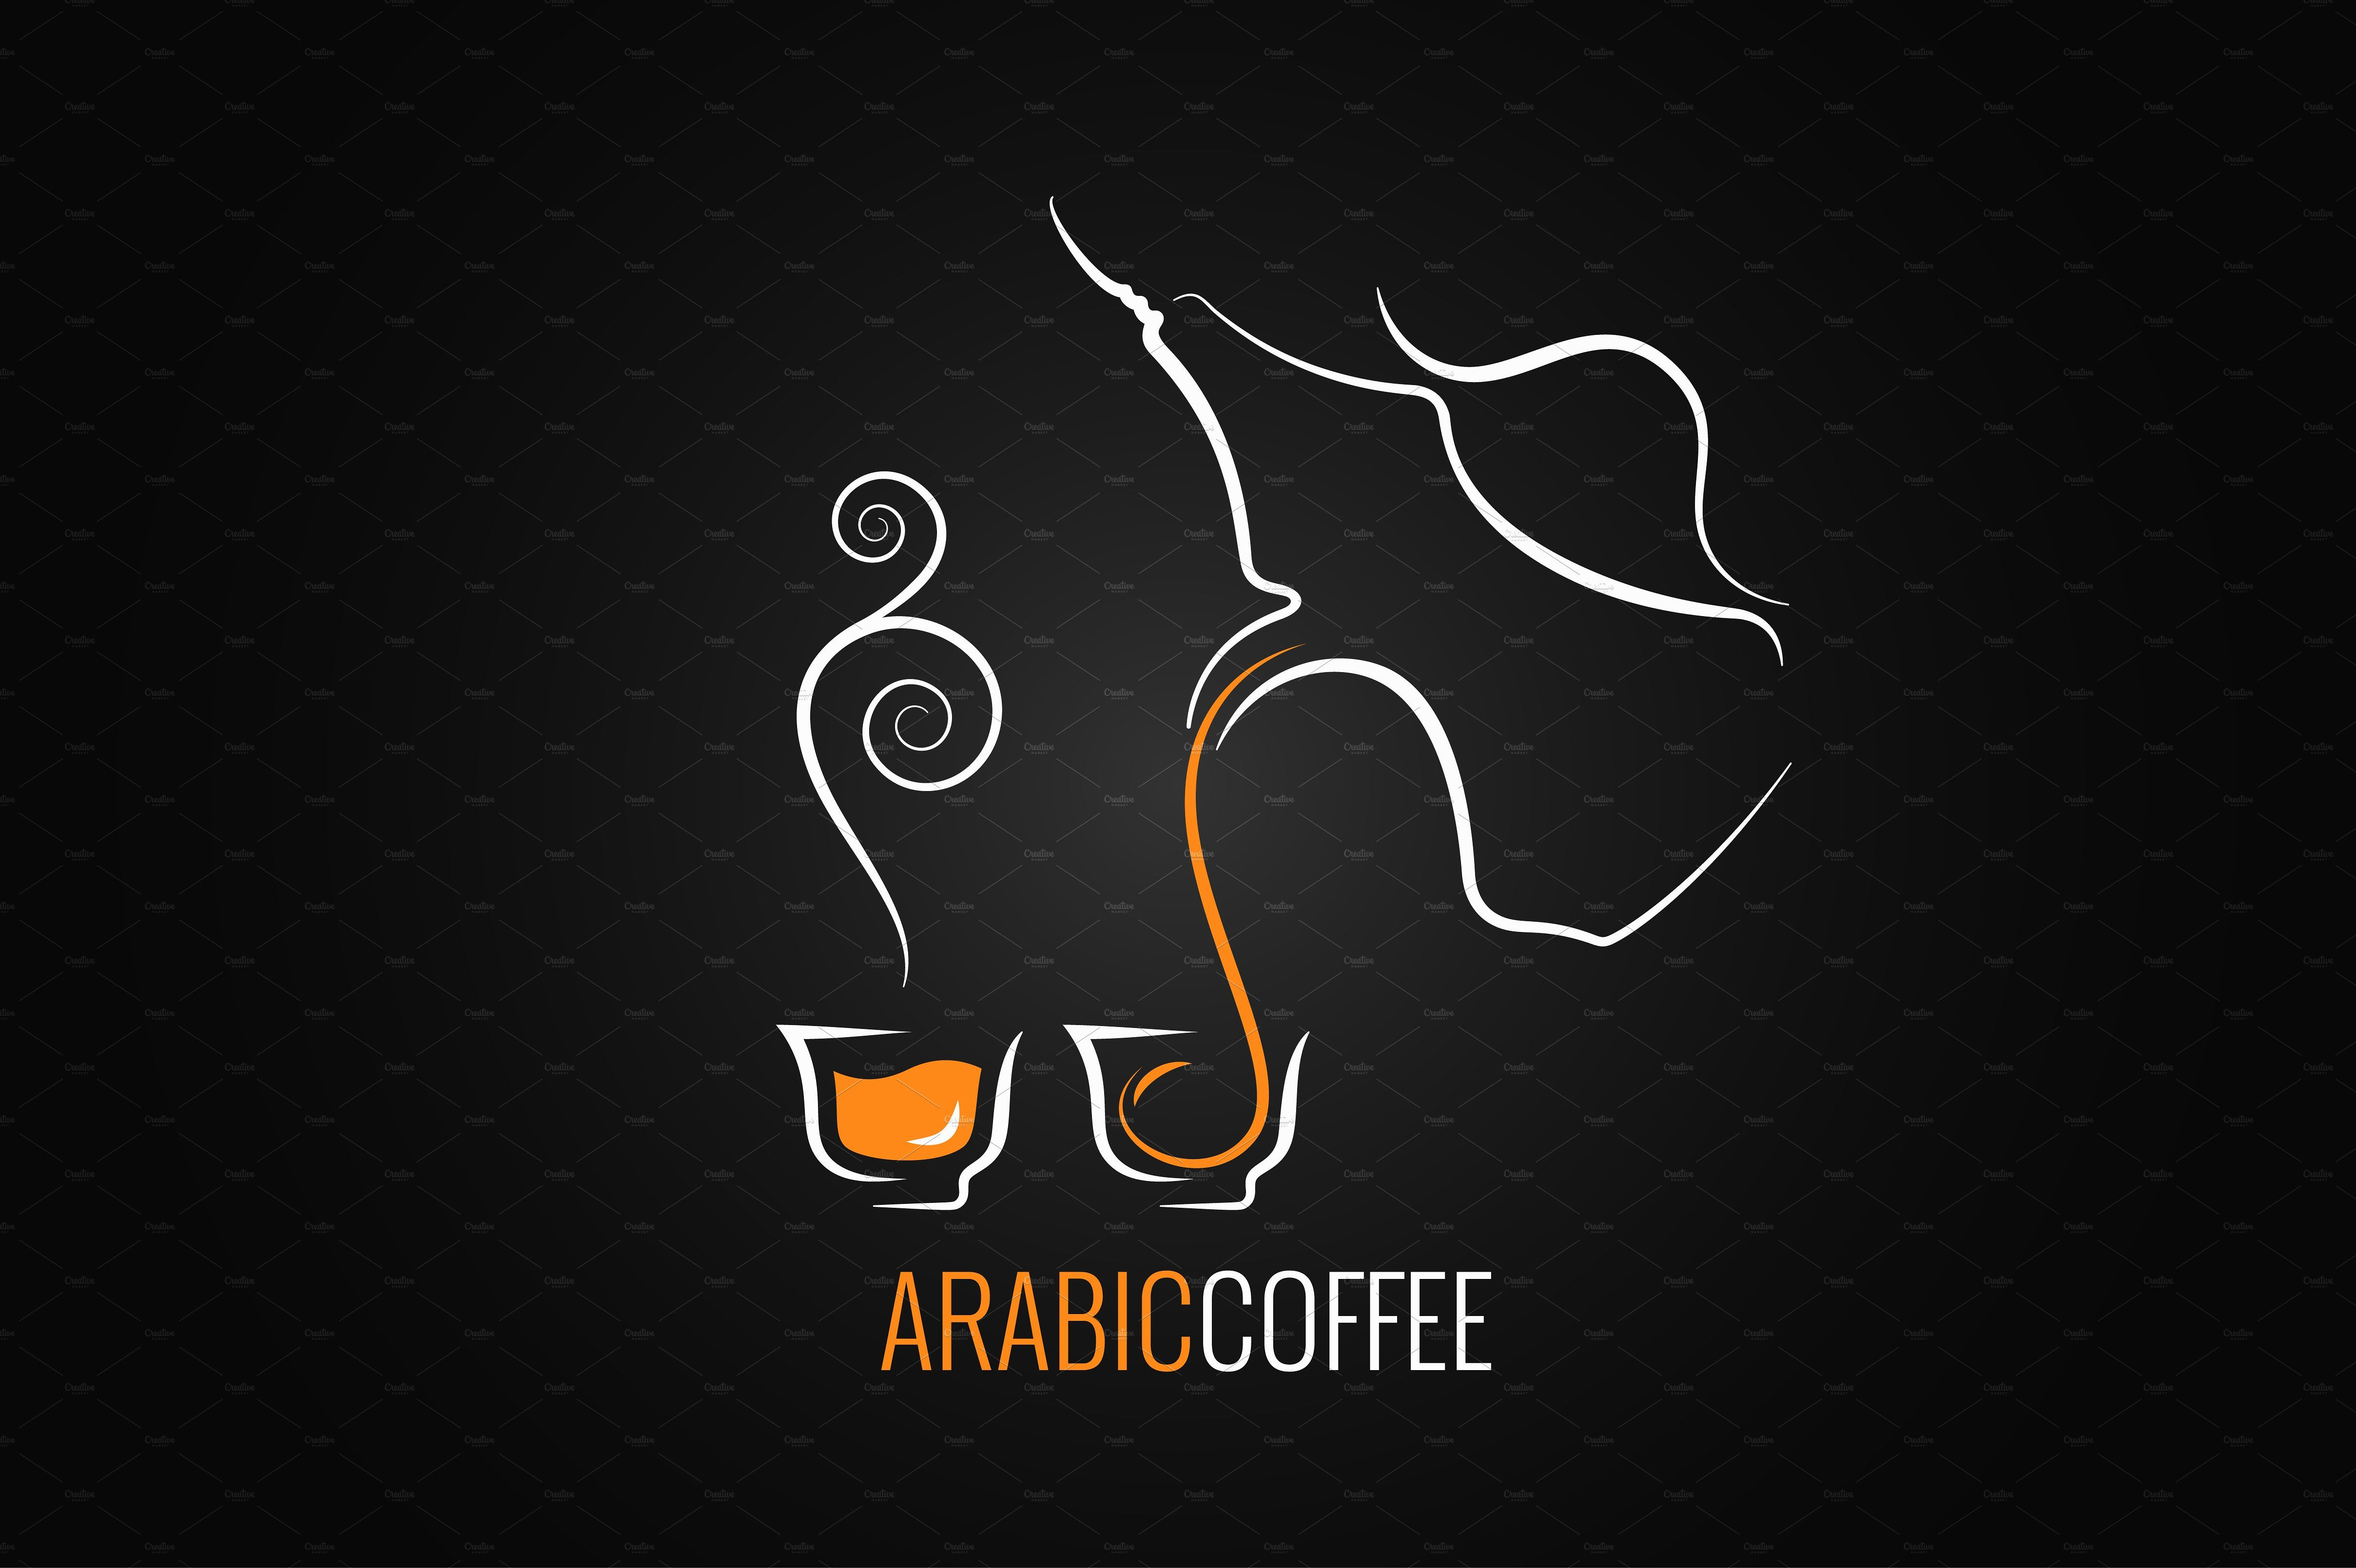 arabic coffee logo design background logos 1 another